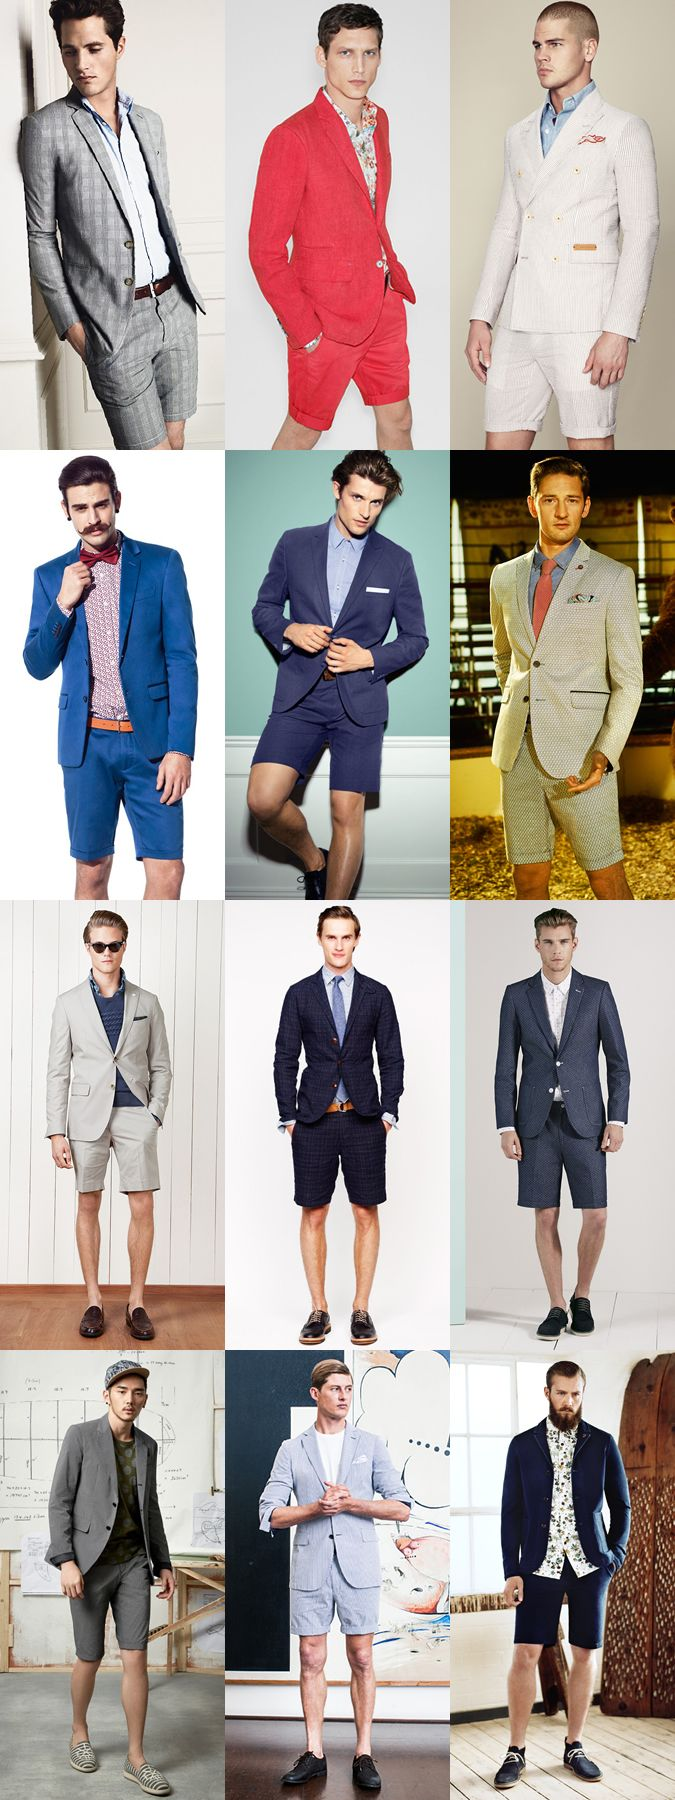 The Matching Short Suit Lookbook Inspiration